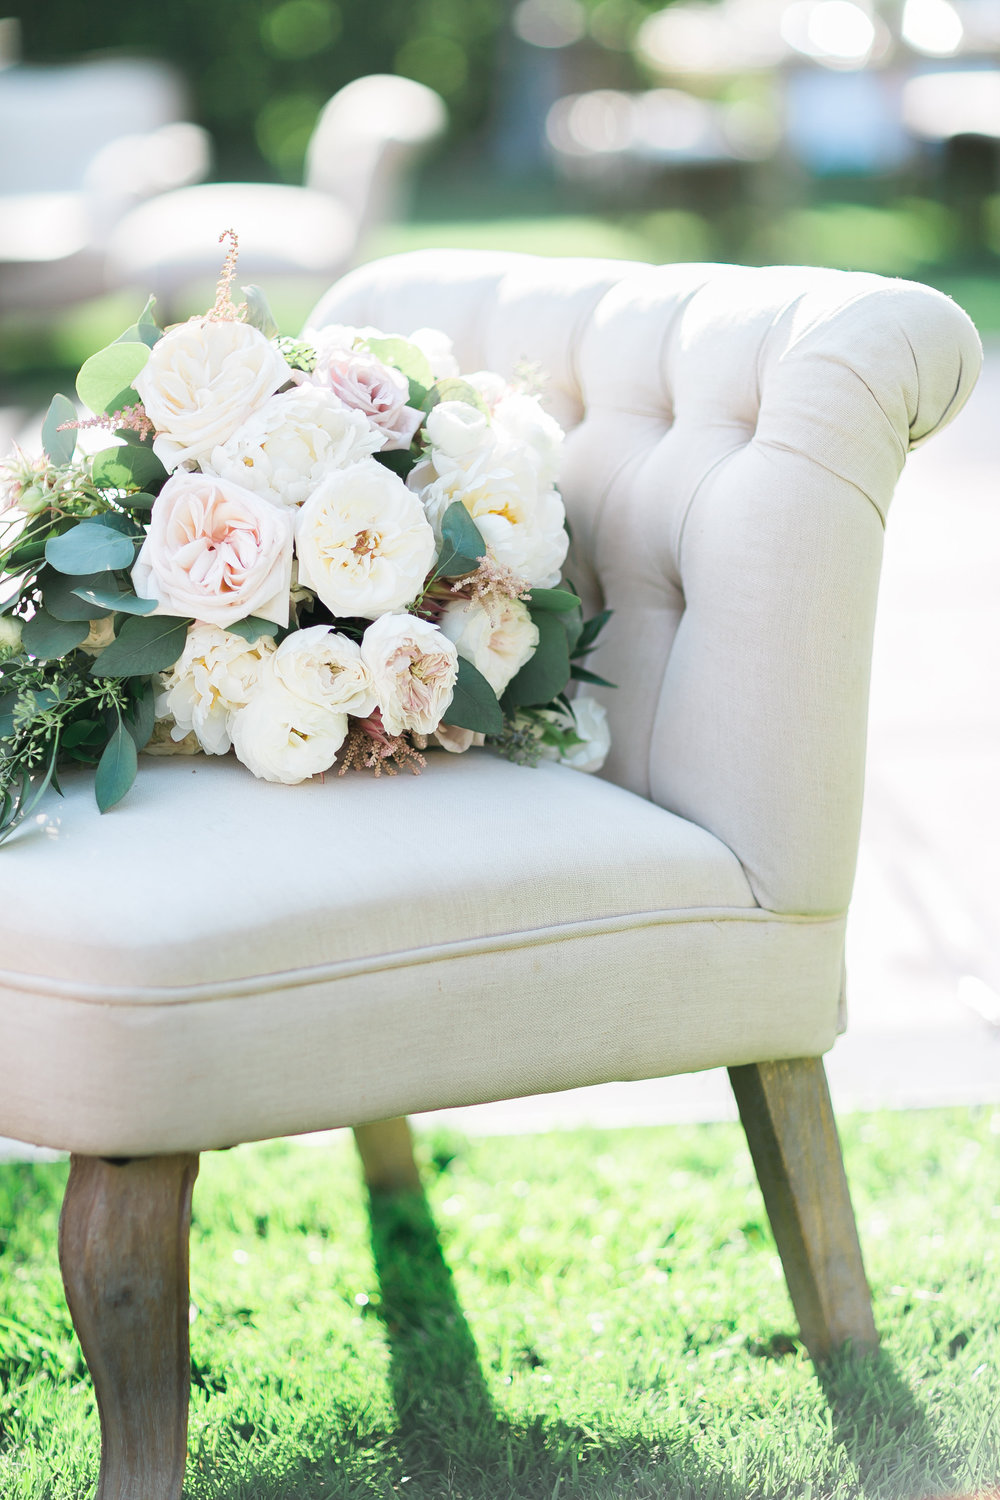 Garden bouquet on lounge chair at outdoor wedding.       Destination Wedding Planner  ANDREA EPPOLITO EVENTS   ·  Images by  J.ANNE P  HOTOOGRAPHY   ·  Video  HOO FILMS   ·  Venue Ritz Carlton Bacara Santa Barbara  · Gown MONIQUE LHULLIER  · Bridesmaids Dresses  SHOW ME YOUR MUMU  · Stationery  SHE PAPERIE  · Bride's Shoes  BADGLEY MISCHKA  · Hair and Makeup  TEAM HAIR AND MAKEUP  · Floral  BLUE MAGNOLIA  · Linen  LA TAVOLA  · Decor Rentals  TENT MERCHANT  · Calligraphy  EBB  ·Lighting  FIVE STAR AV  · Ice Cream Station  MCCONNELL'S ICE CREAM